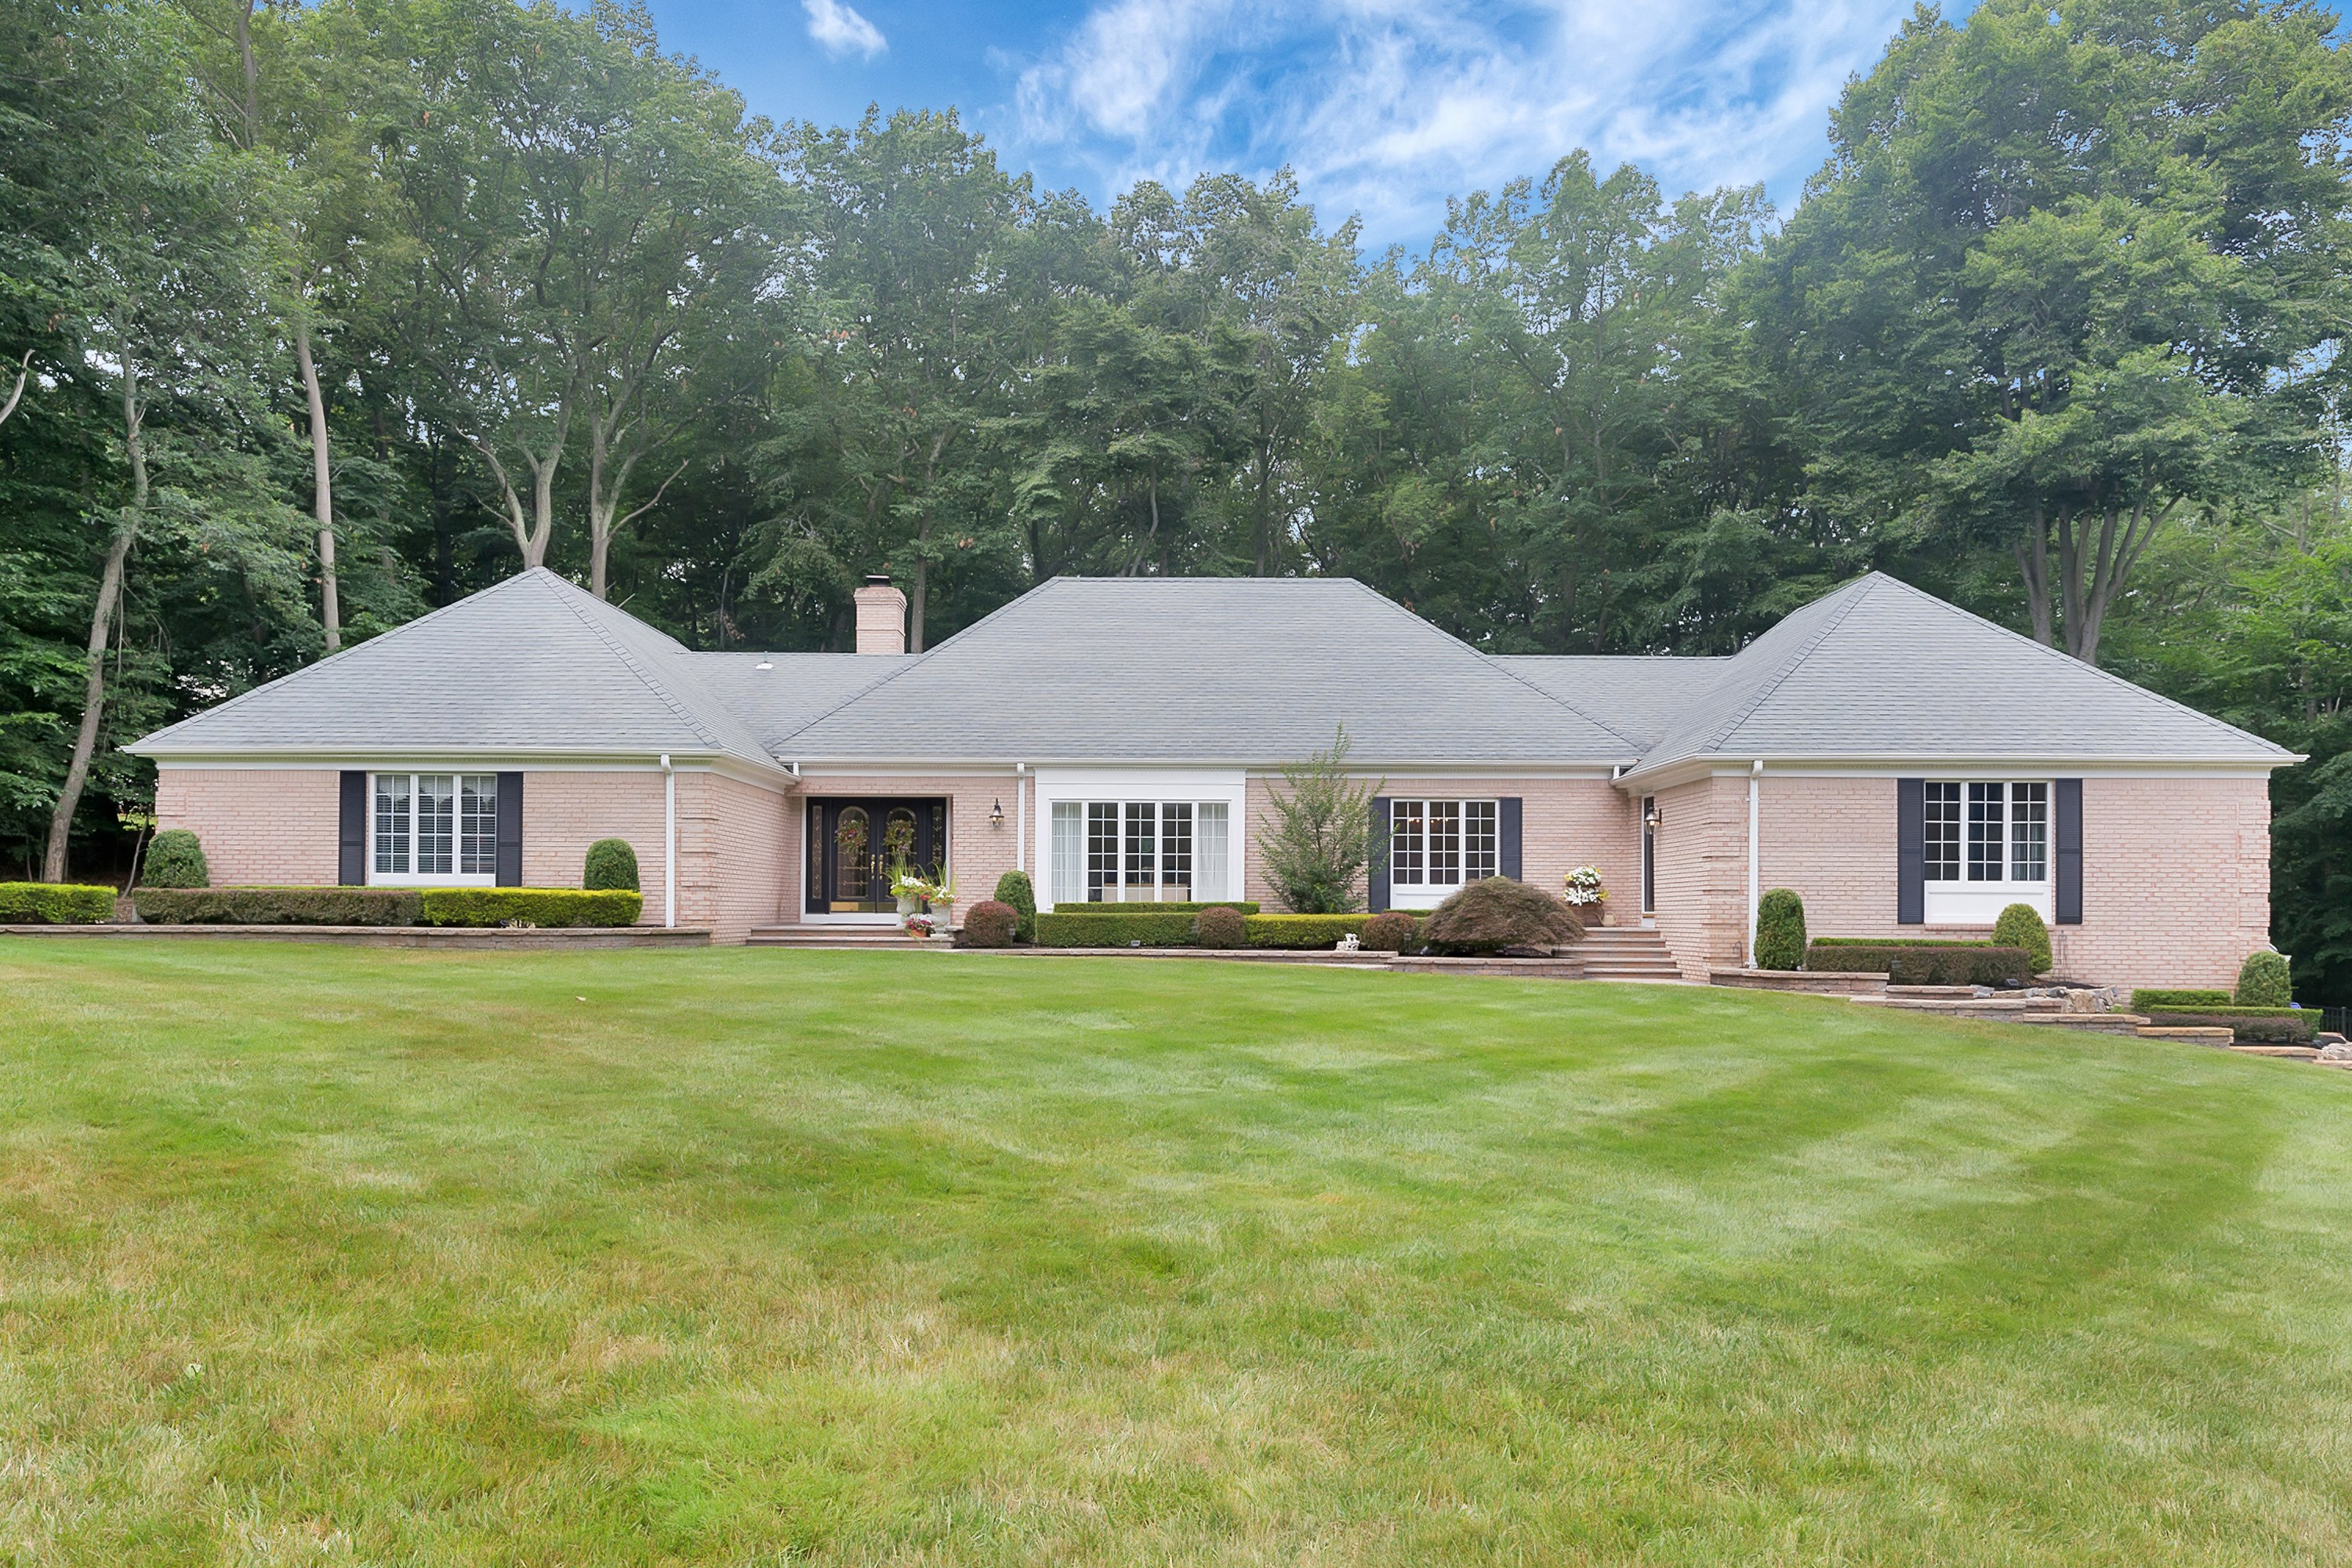 Single Family Home for Sale at Elegant Expanded Ranch 16 Deep Wood Lane Colts Neck, New Jersey, 07722 United States